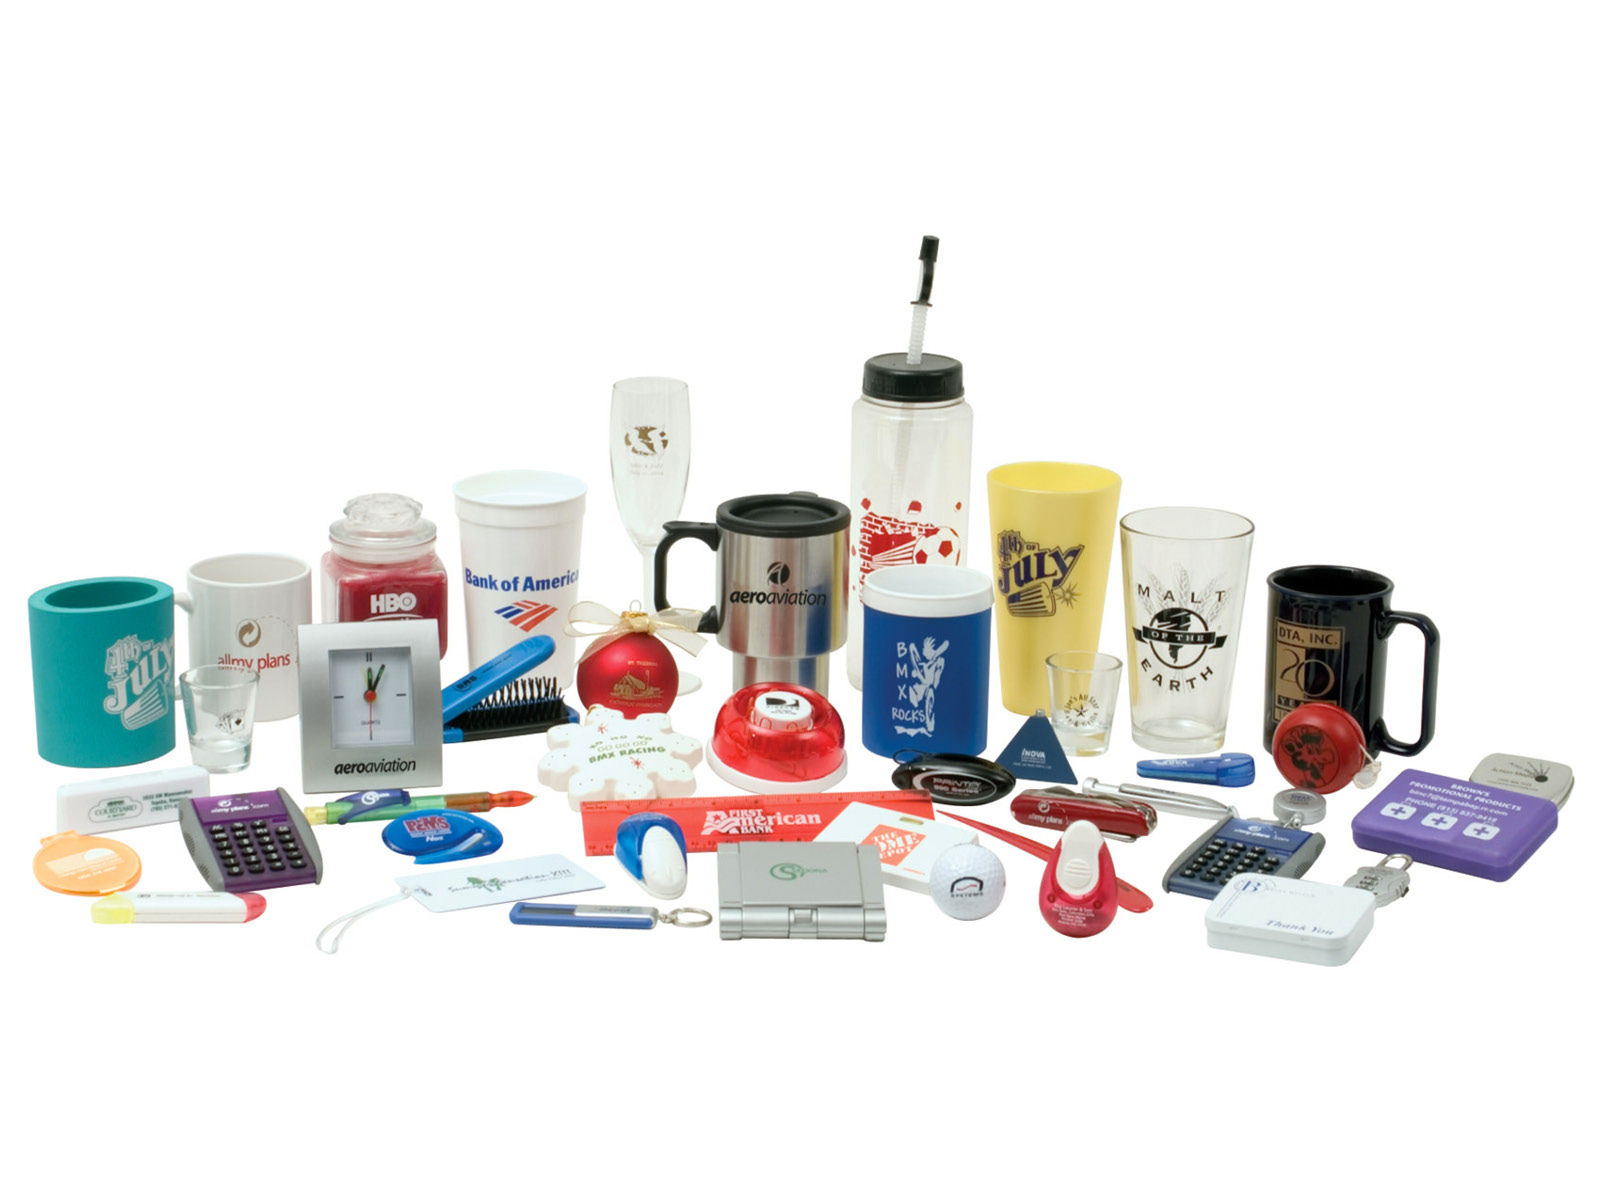 PROMOTIONAL PRODUCTS - Promotional products are a cost efficient way of marketing your company to an extremely large audience while doing minimal work. Branded promotional items are great for offices, trade shows, giveaways, events, party favors, or gifts. If you are new to the idea of promotional items for your company, give us a call and we will show you how they can benefit you!CLICK HERE TO LEARN MORE